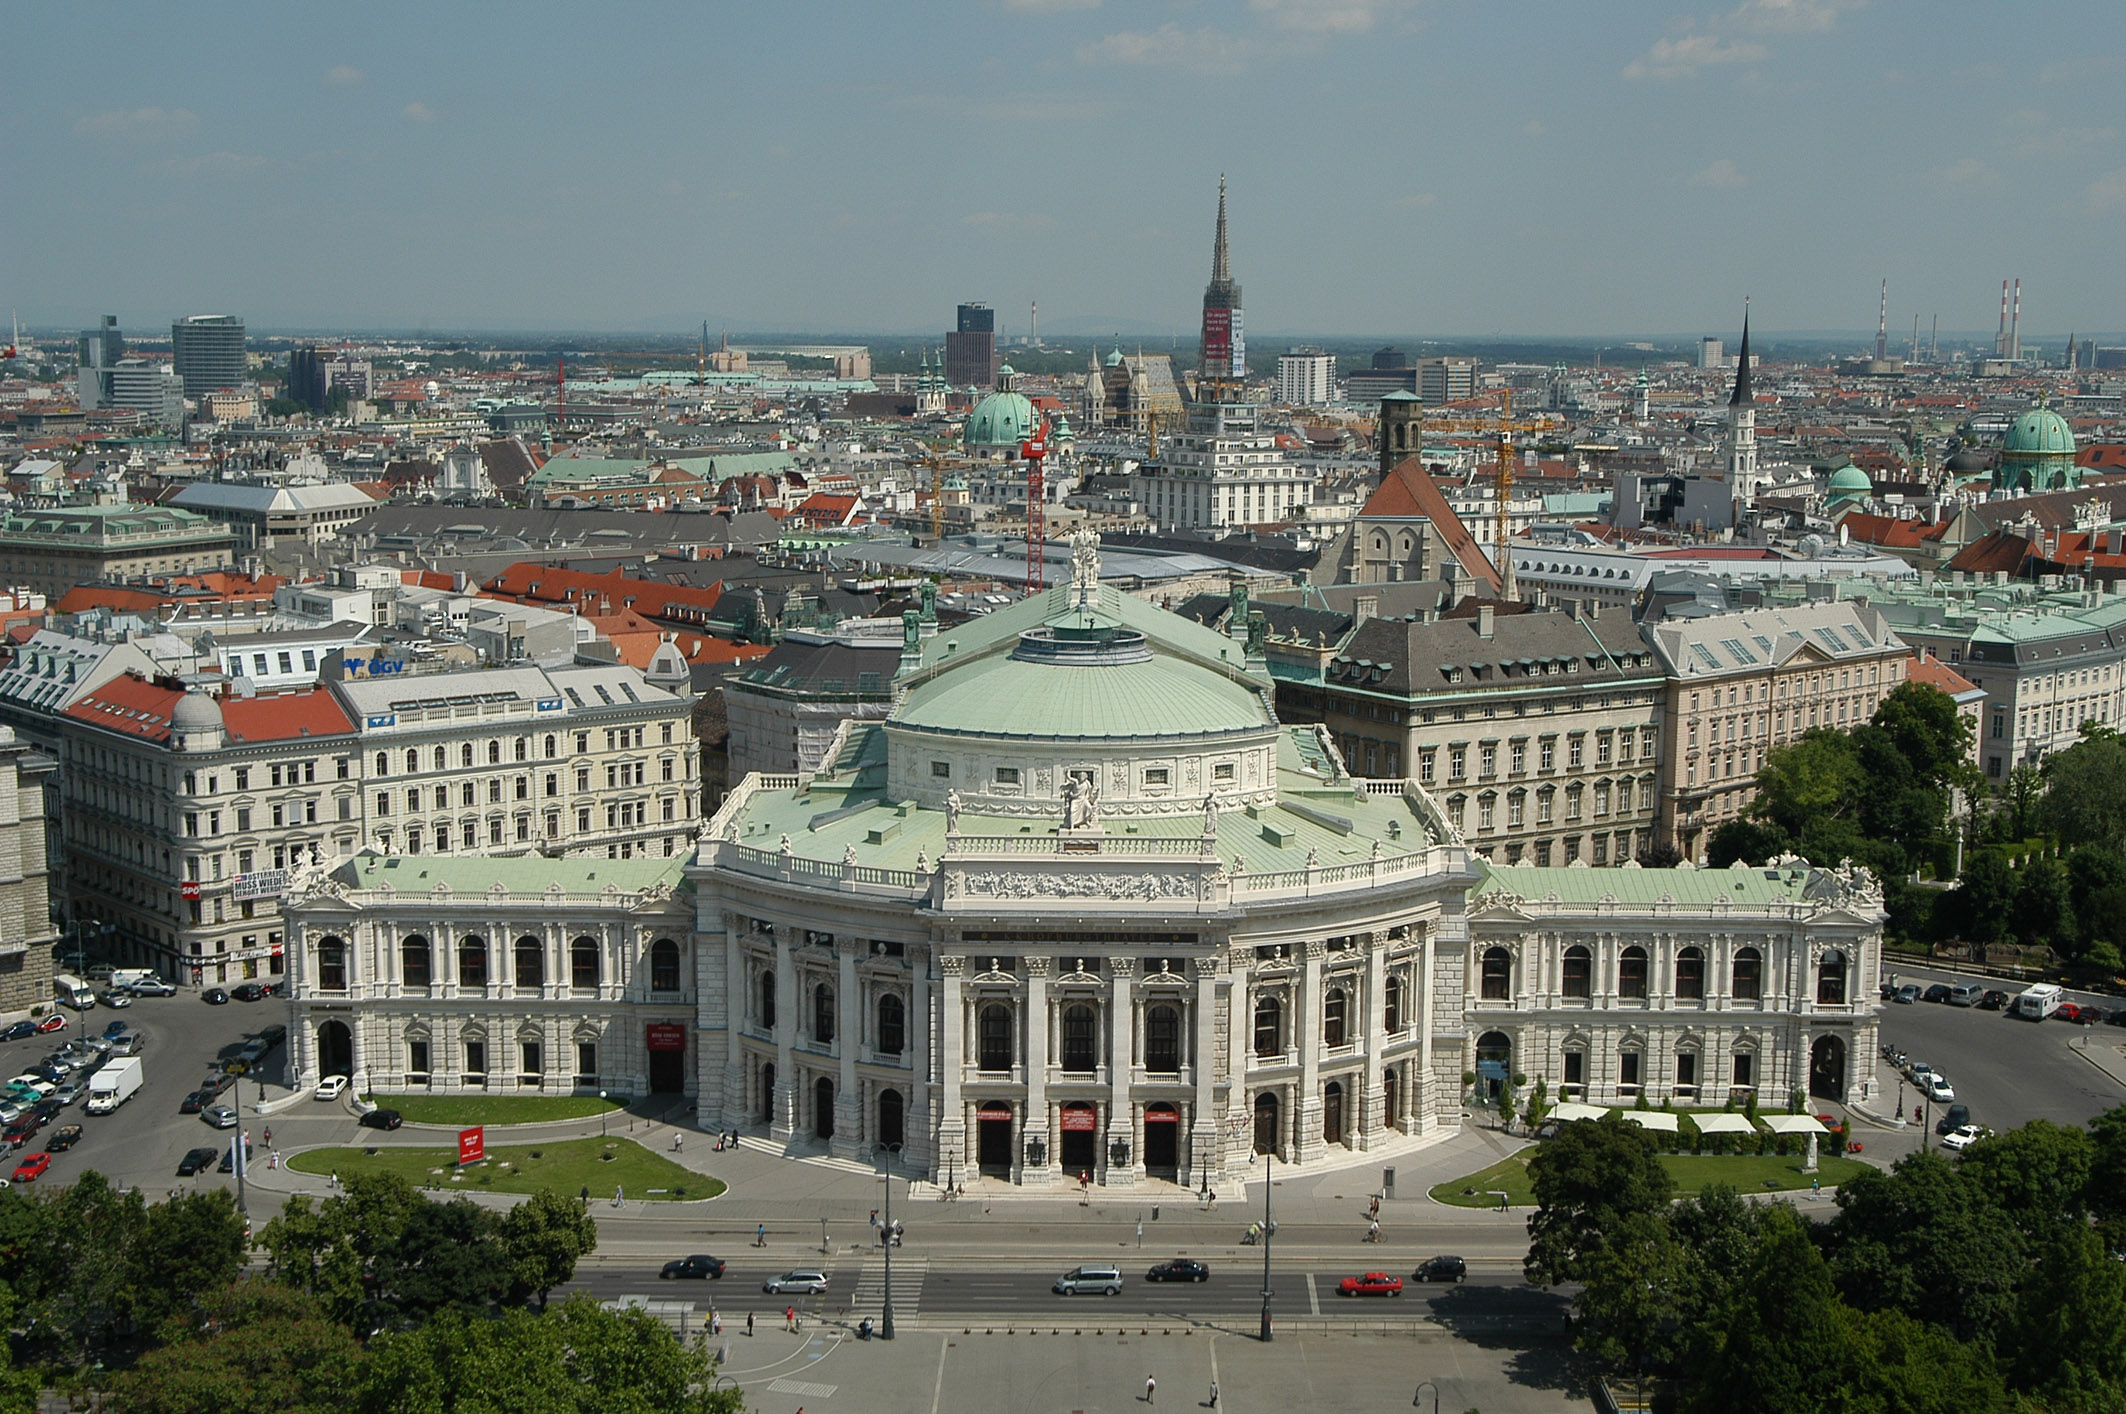 Aerial view of the Burgtheater in Vienna Austria. Photo taken on June 8, 2004.